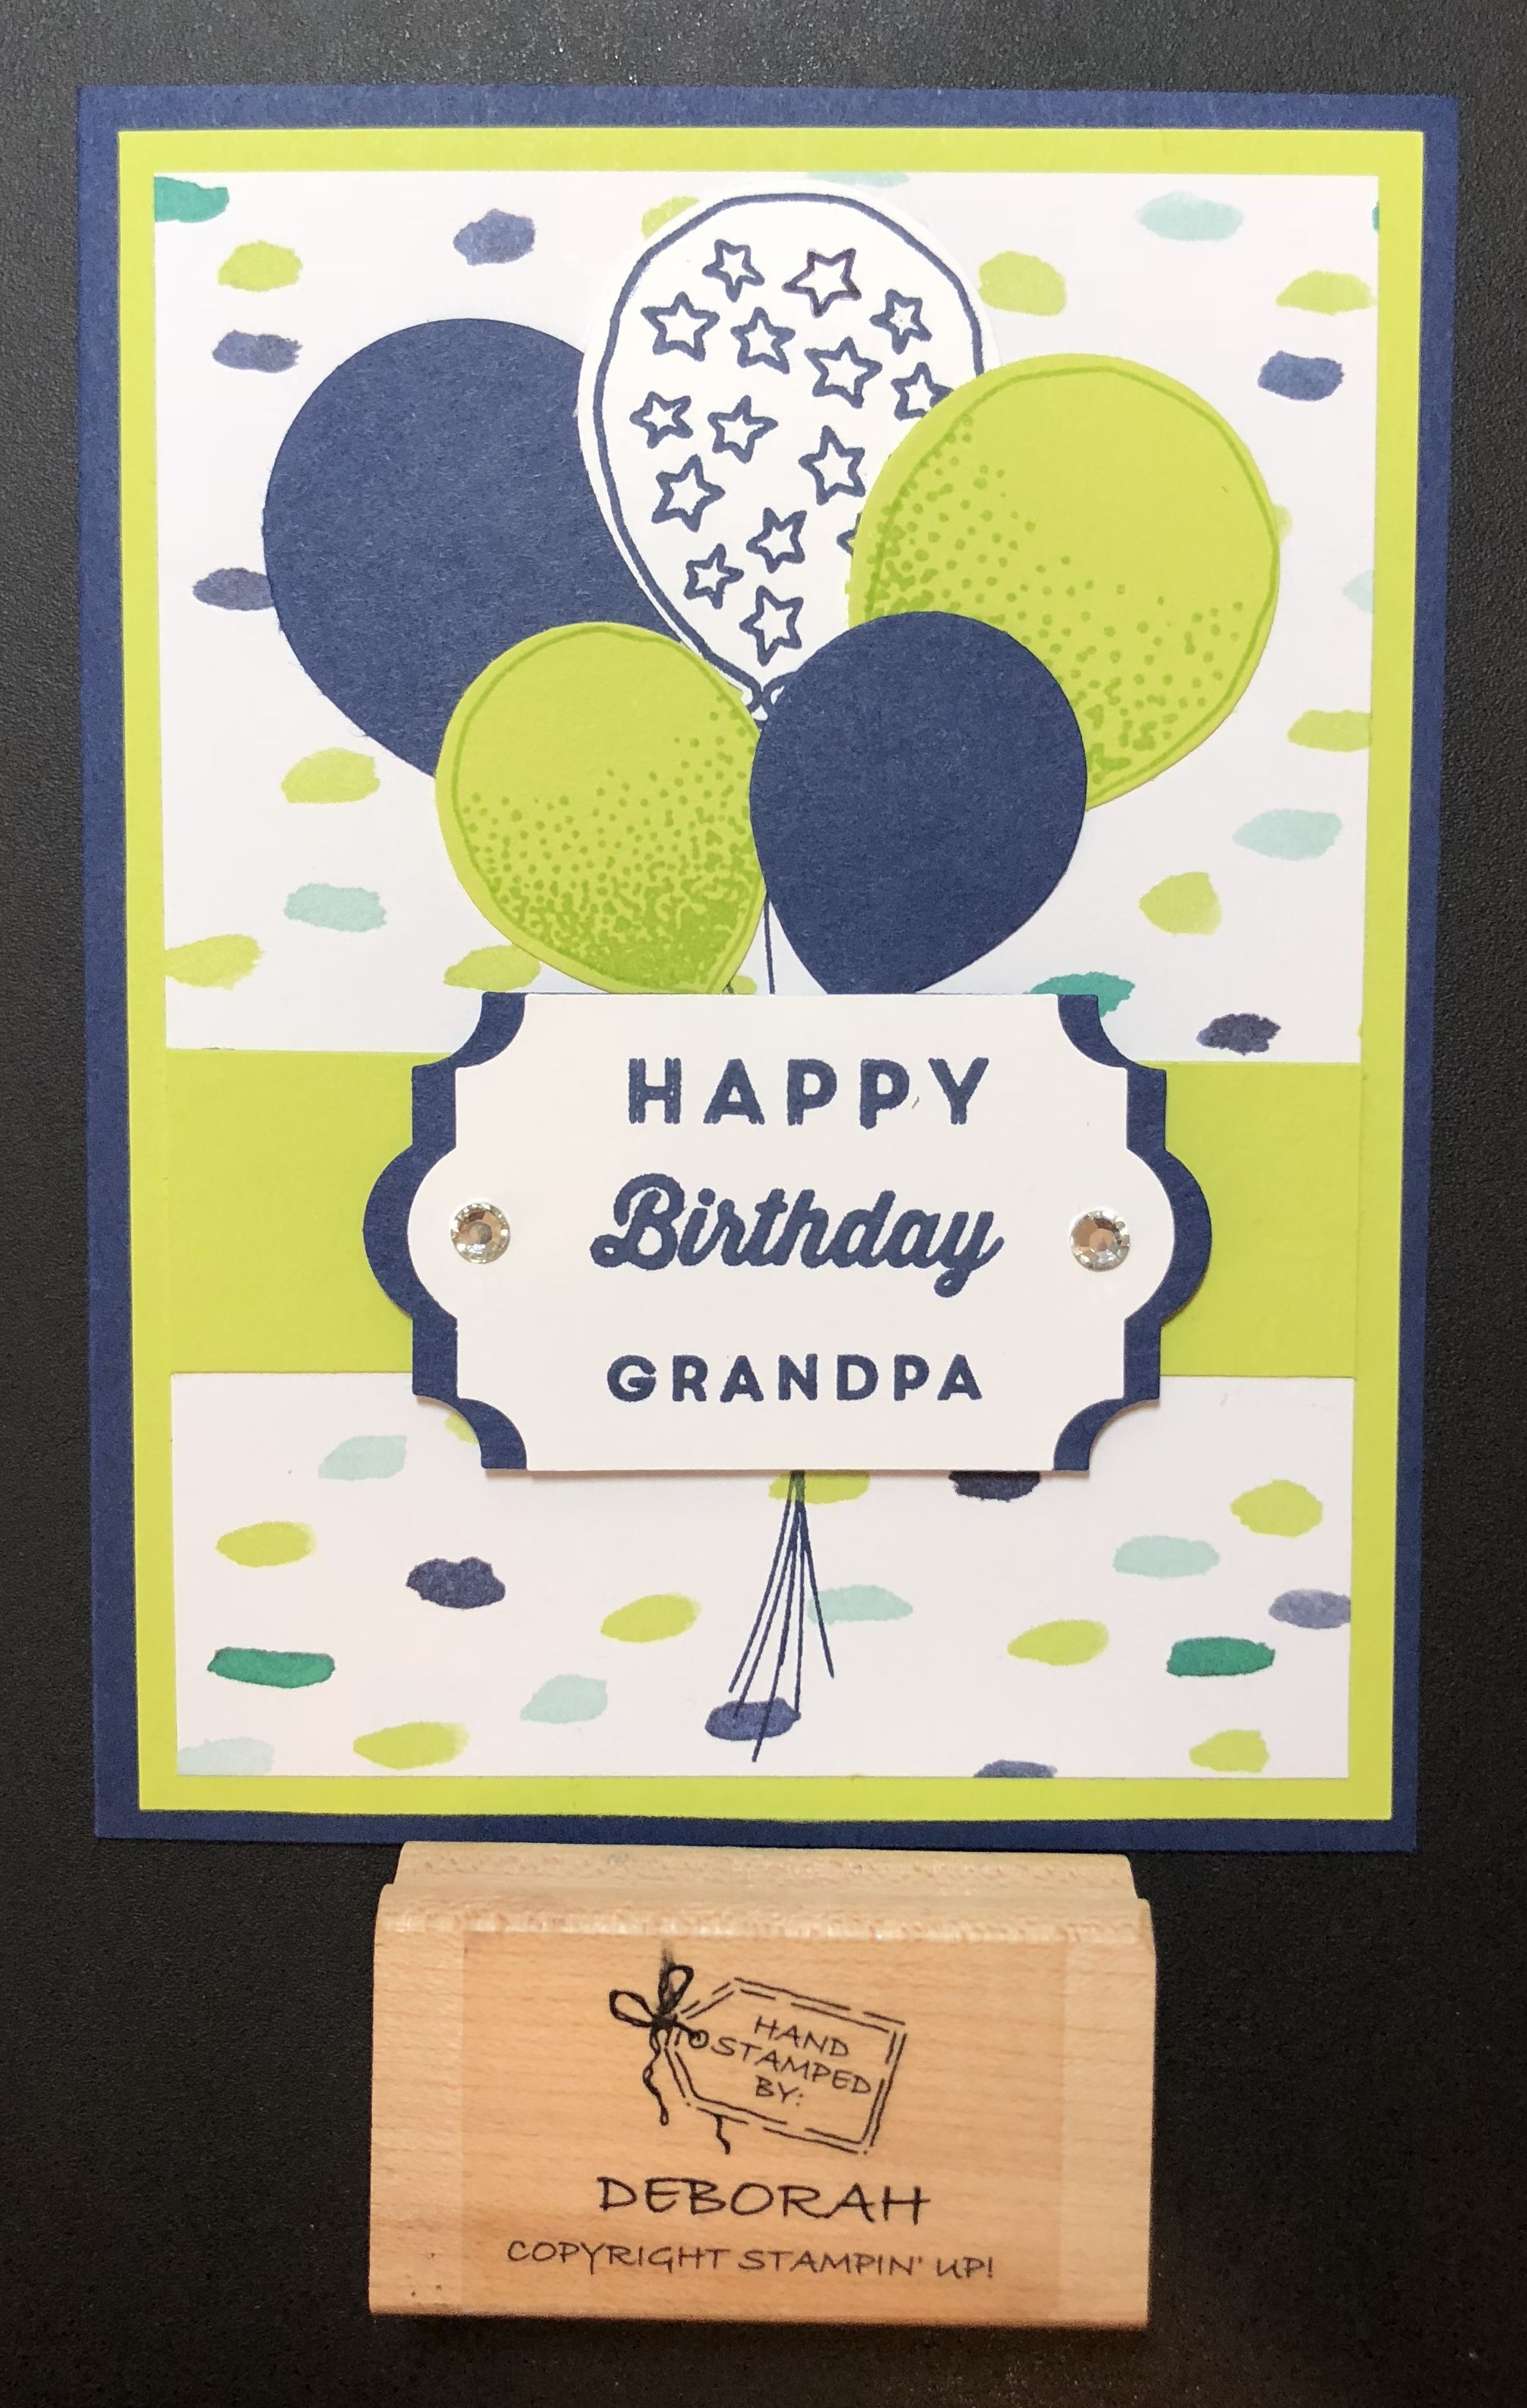 A Birthday Card For Grandpa Using Balloon Celebration And Manly Moments Set From The May 2018 Paper Pumpkin Naturally Eclectic DSP